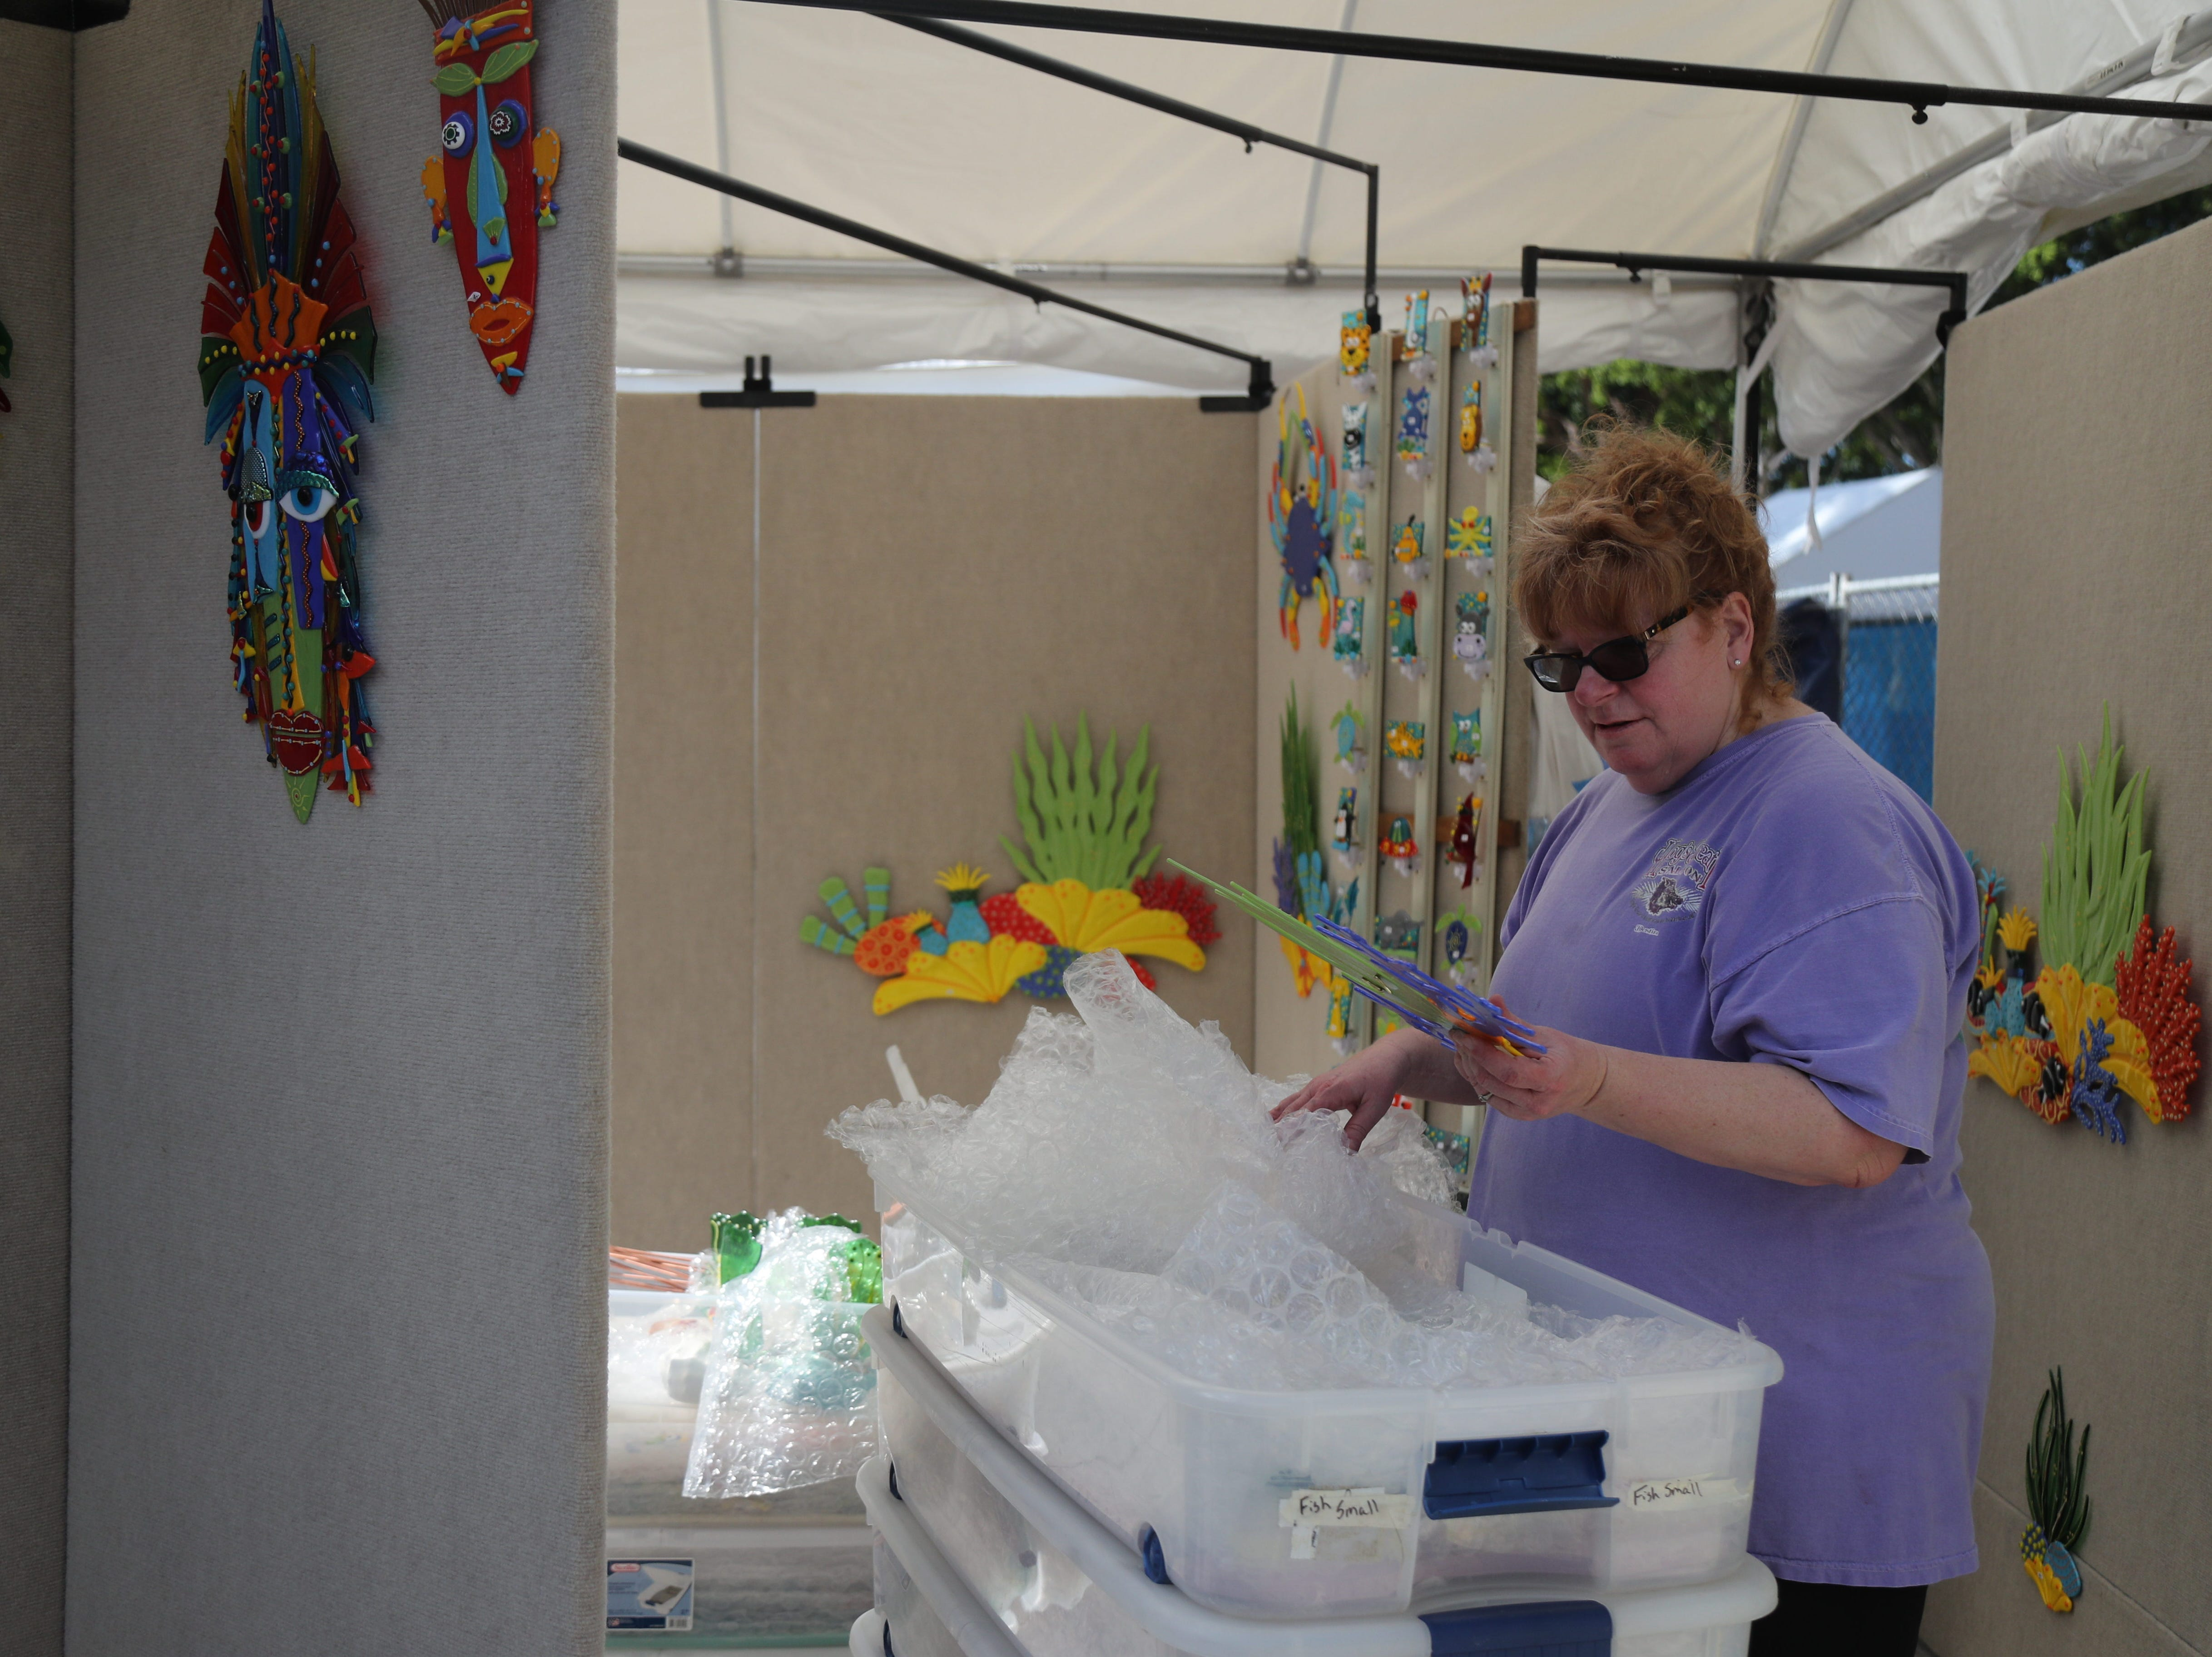 Charlene Heilman, a glass artist from Lily, Kentucky, sets up at ArtFest in downtown Fort Myers on Friday, Feb 1, 2019.